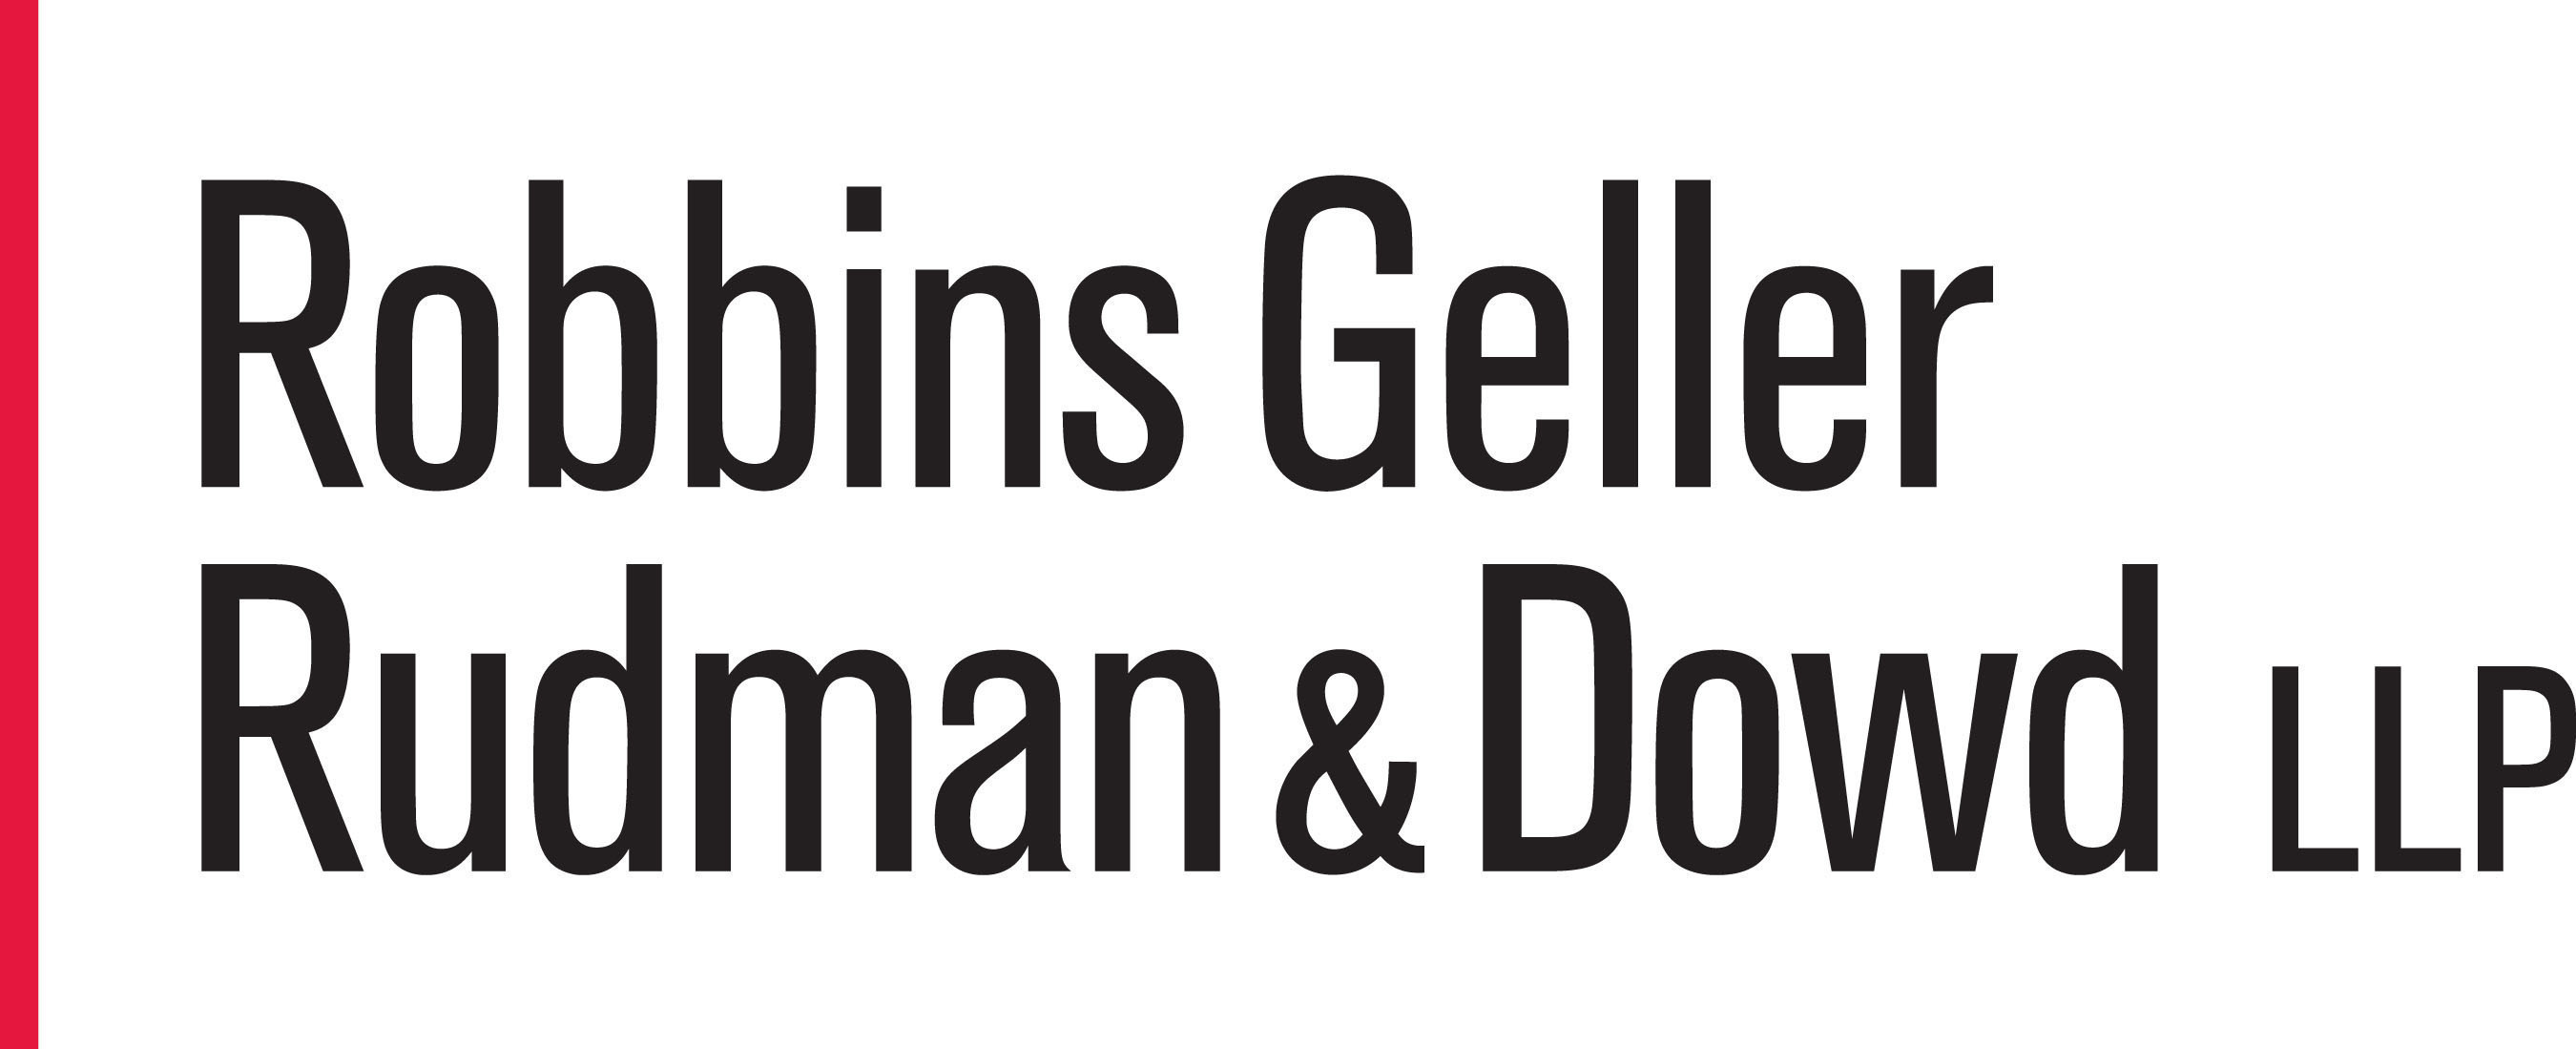 Robbins Geller, with 200 lawyers in ten offices, represents U.S. and international institutional investors in contingency-based securities and corporate litigation. The firm has obtained many of the largest securities class action recoveries in history, including the largest securities class action judgment. Please visit http://www.rgrdlaw.com for more information.